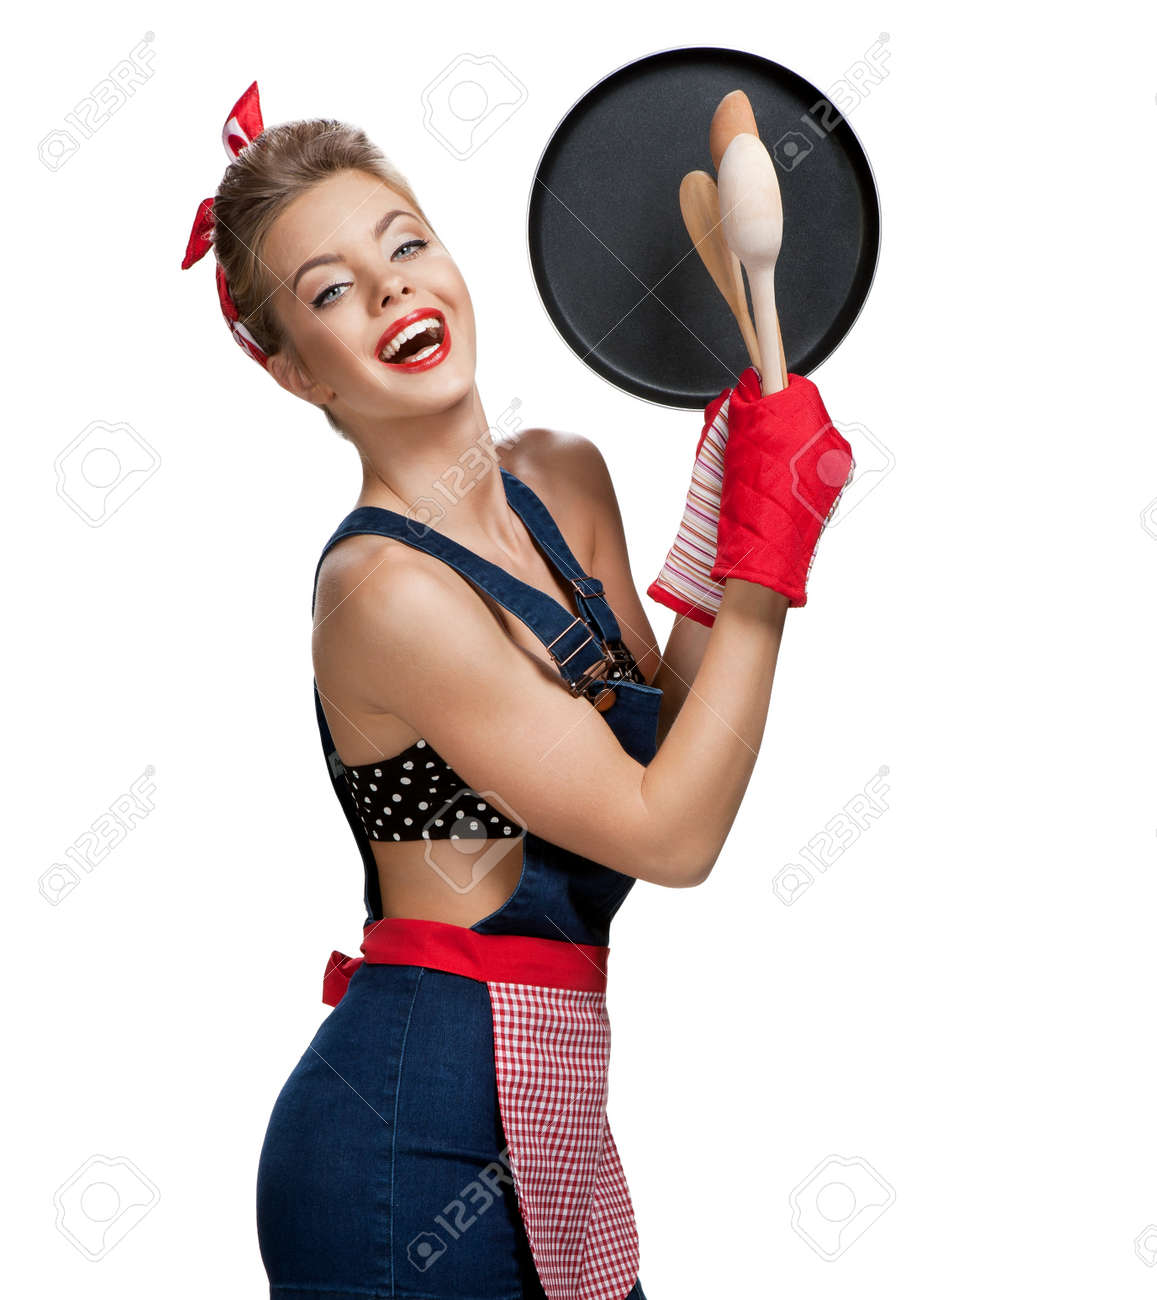 White gloves apron cleaning services - Attractive Housewife Wearing Apron With Kitchen Utensils Young Beautiful American Pin Up Girl Isolated